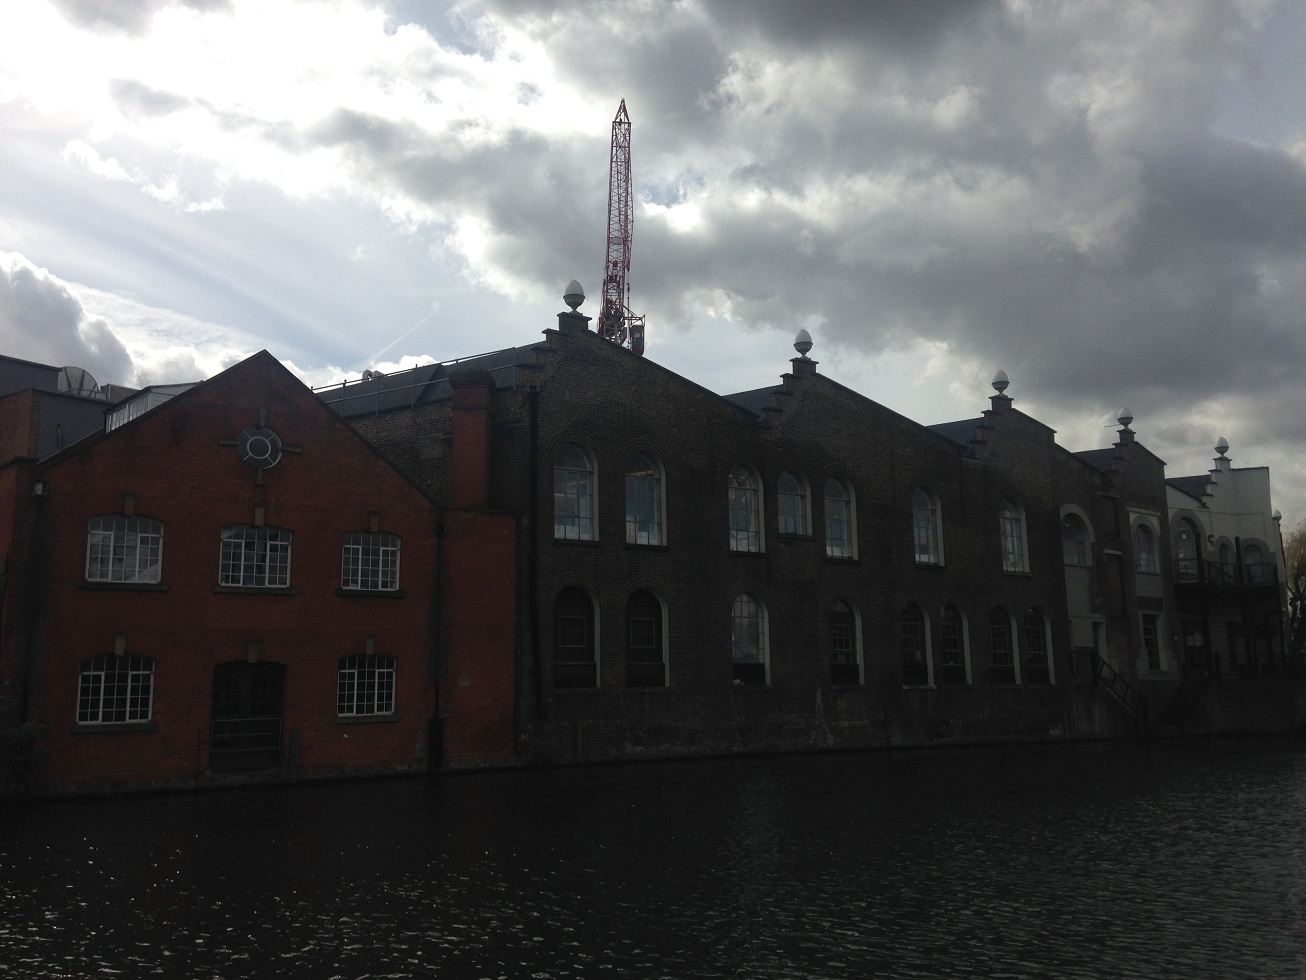 Former wharves lining the Regent's Canal, Camden, London NW1